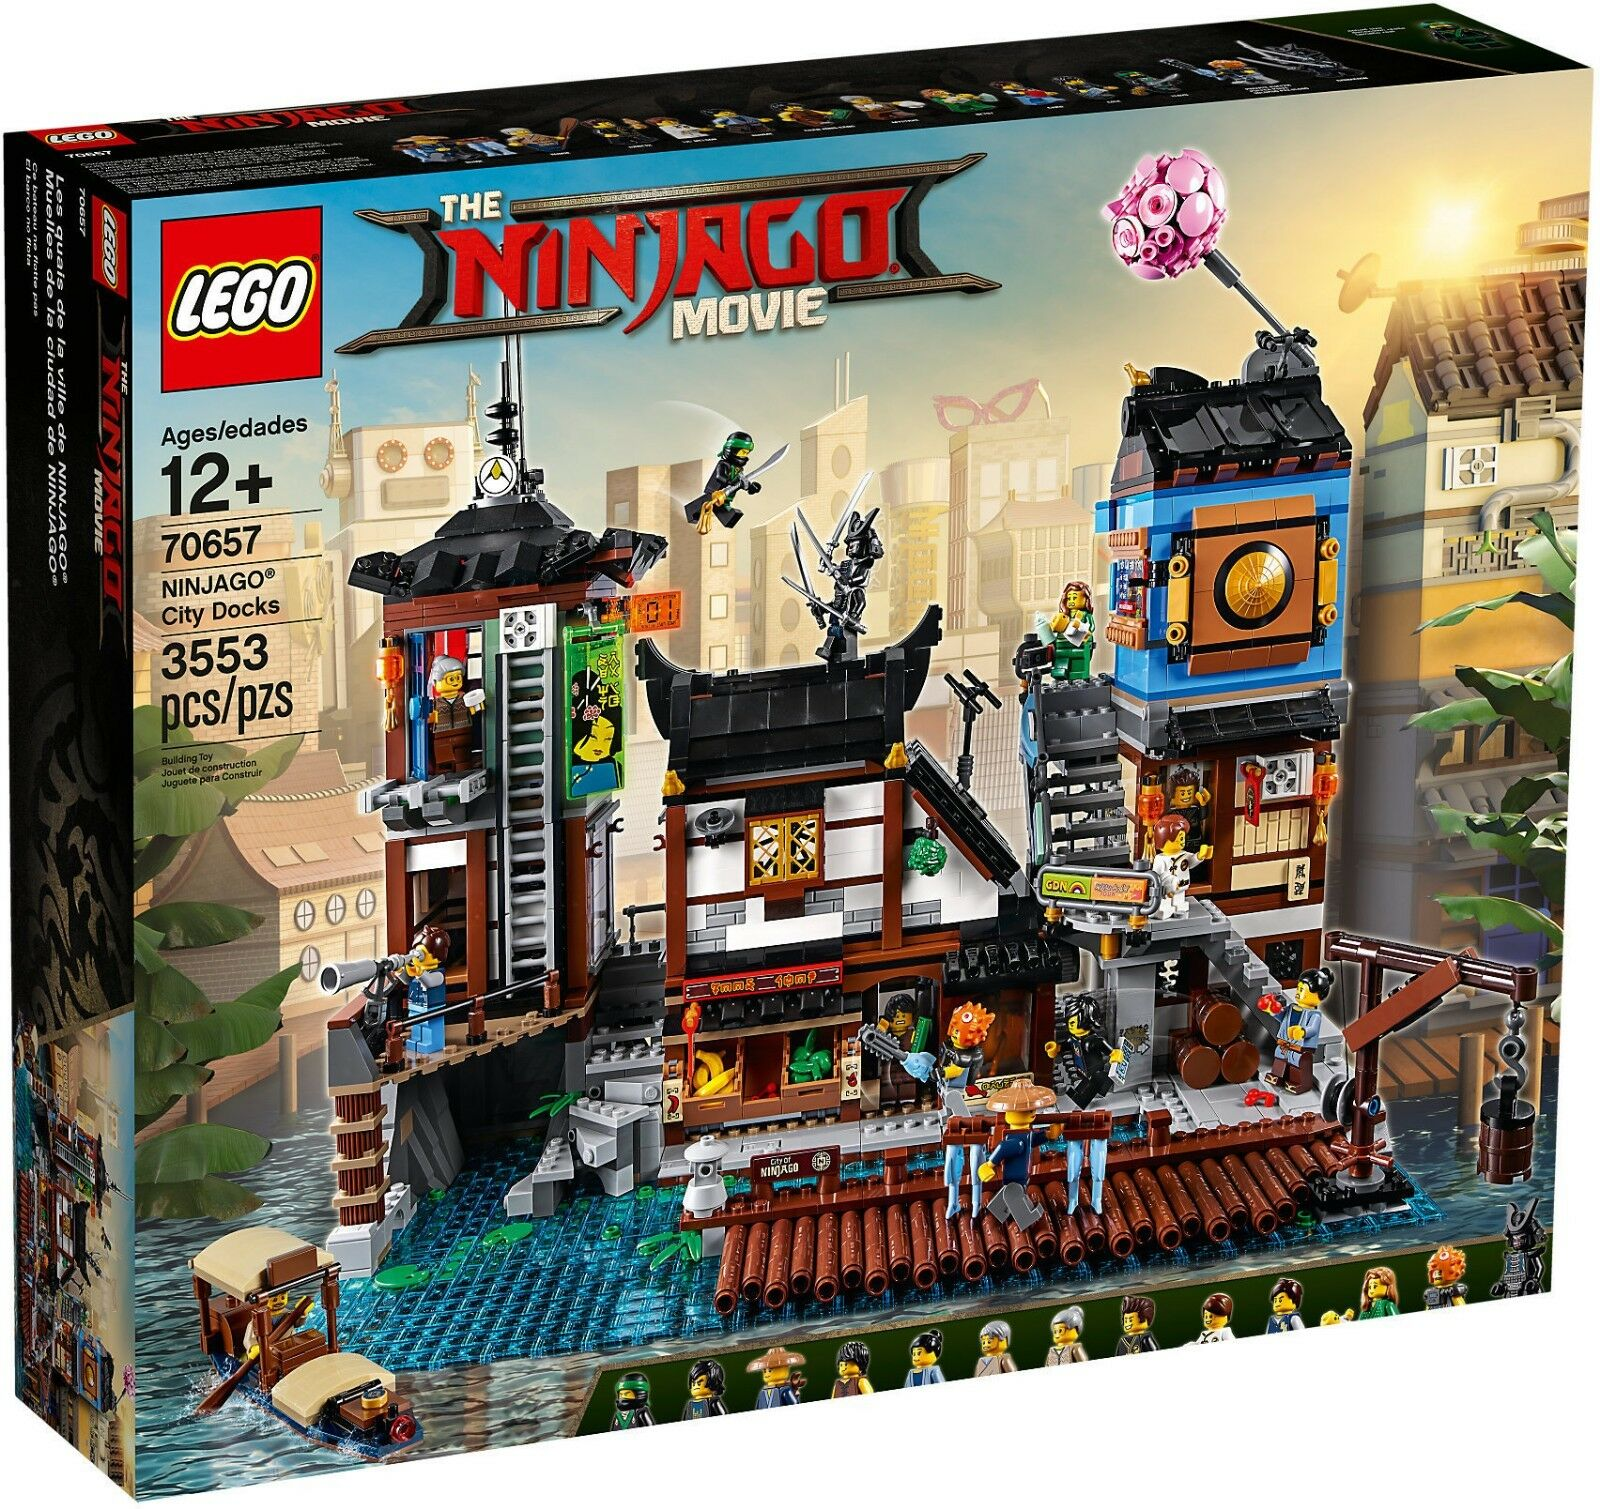 LEGO 70657 Porto di NINJAGO® City - NINJAGO MOVIE 12 Pz 3553